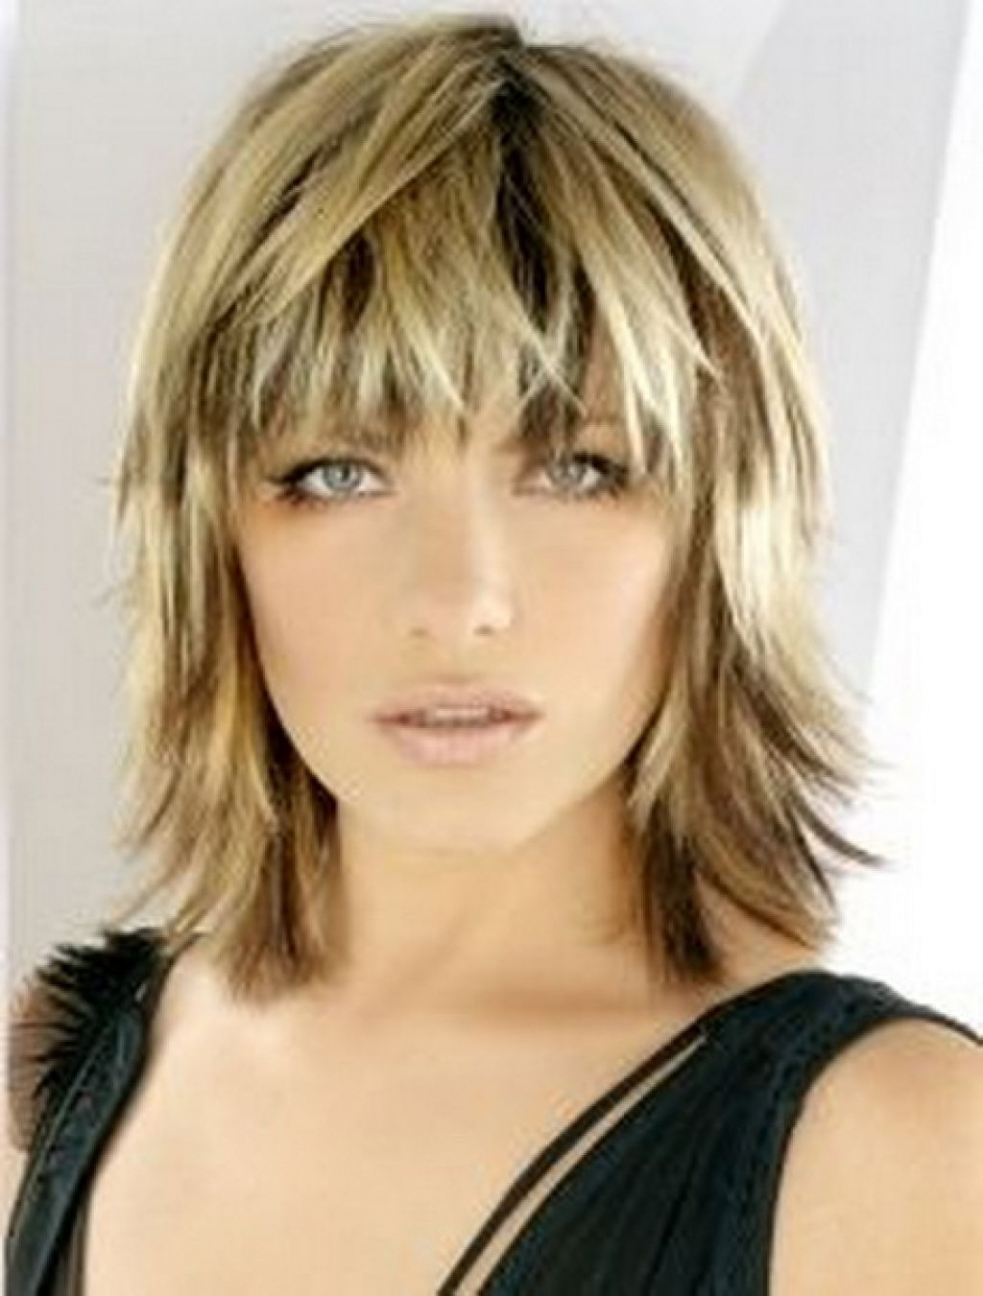 Famous Wispy Medium Haircuts With Medium Wispy Hairstyles – Hairstyle For Women & Man – Medium (View 12 of 20)